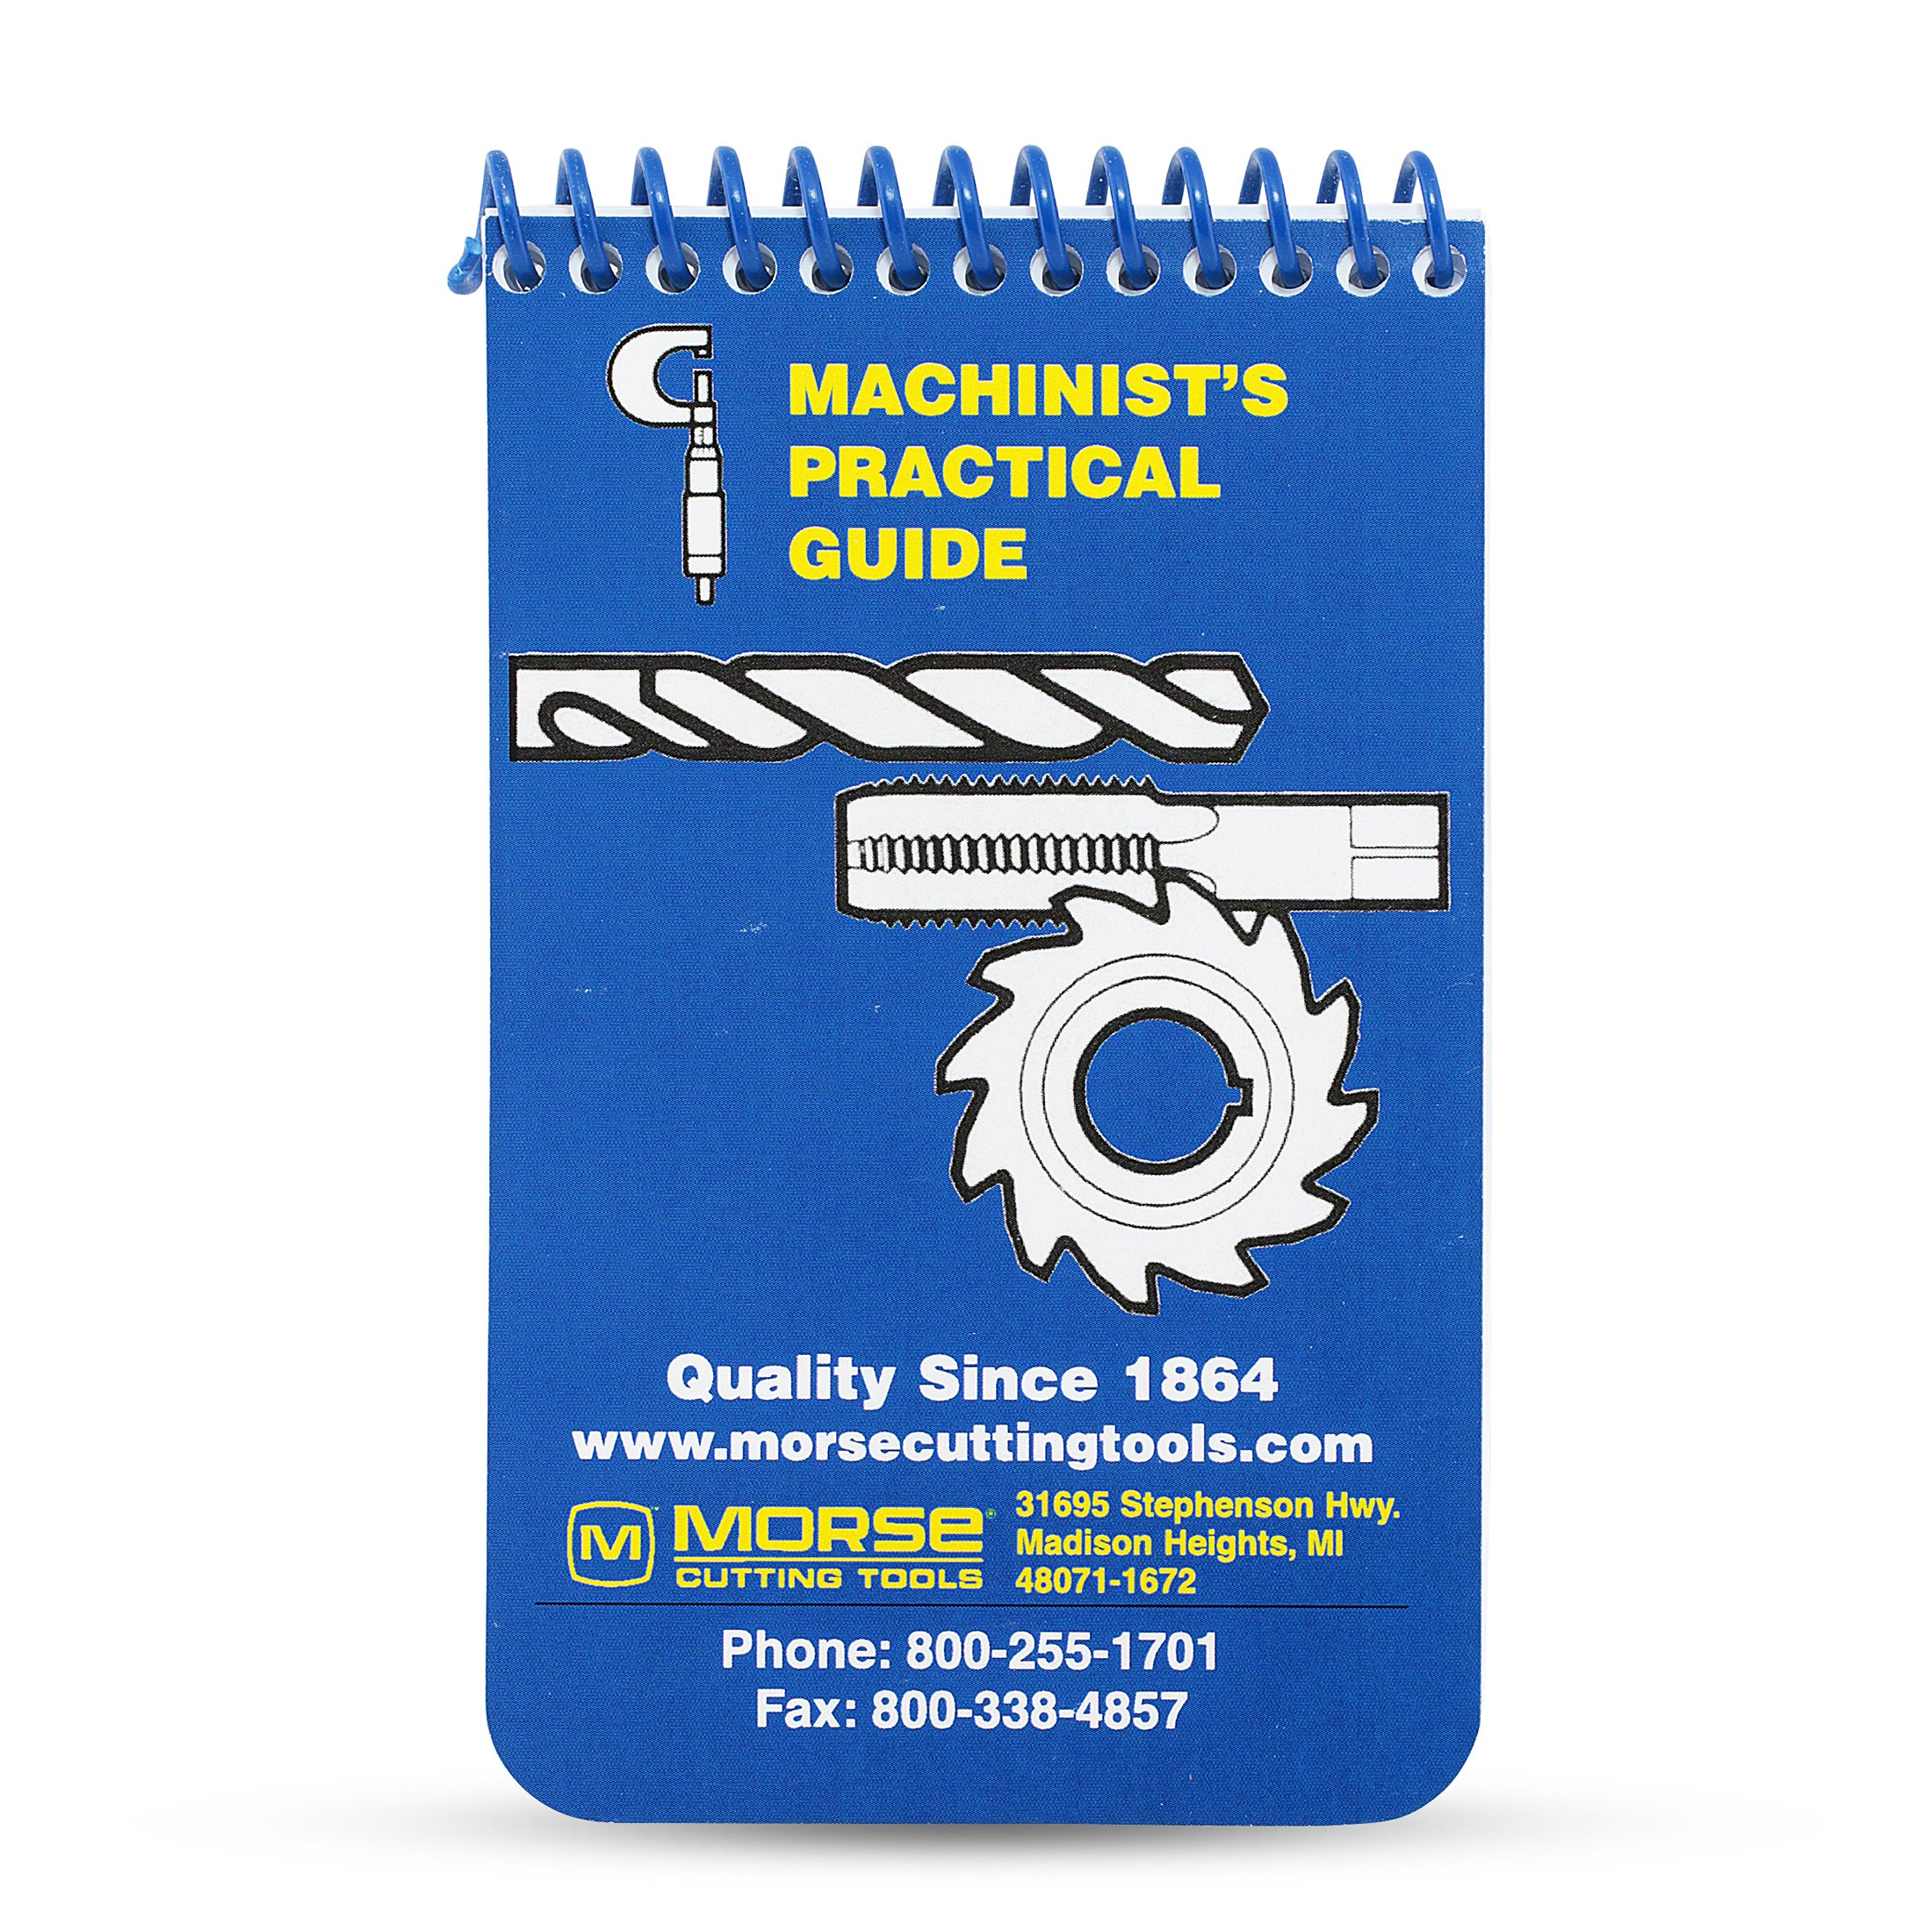 Morse Machinist's Practical Guide for Pocket or Toolbox - A Machinist Handbook to Reference Information on Cutters, taps, Dies, Drill bits, endmills and Much More General info.